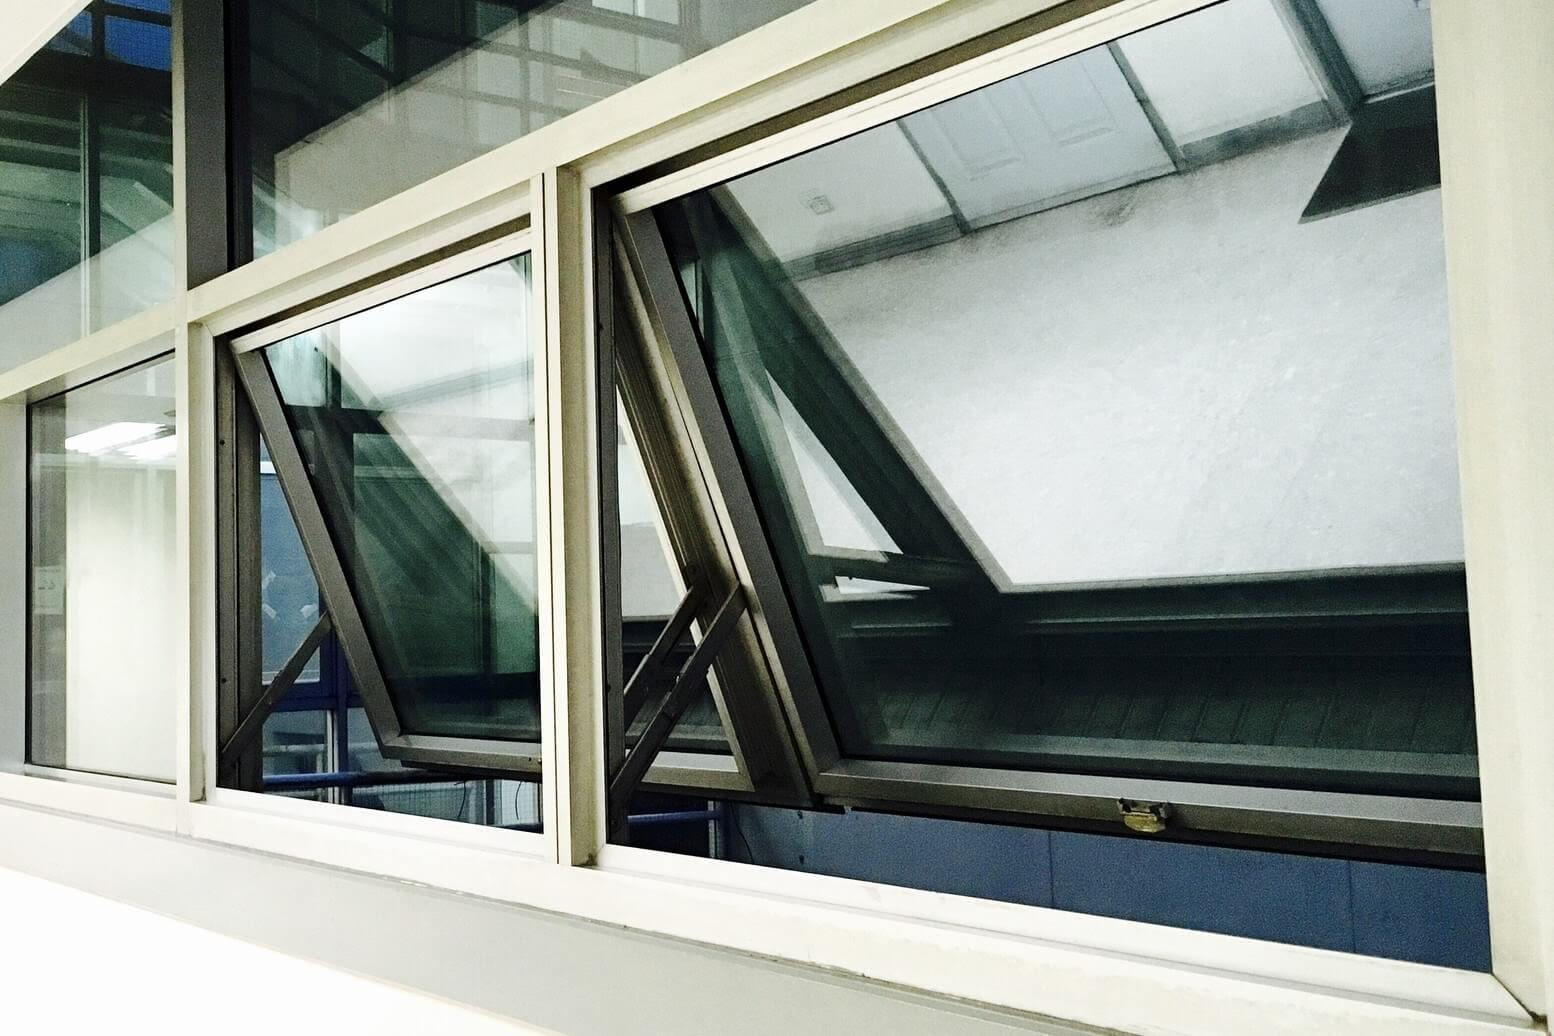 an awning window that is open slightly